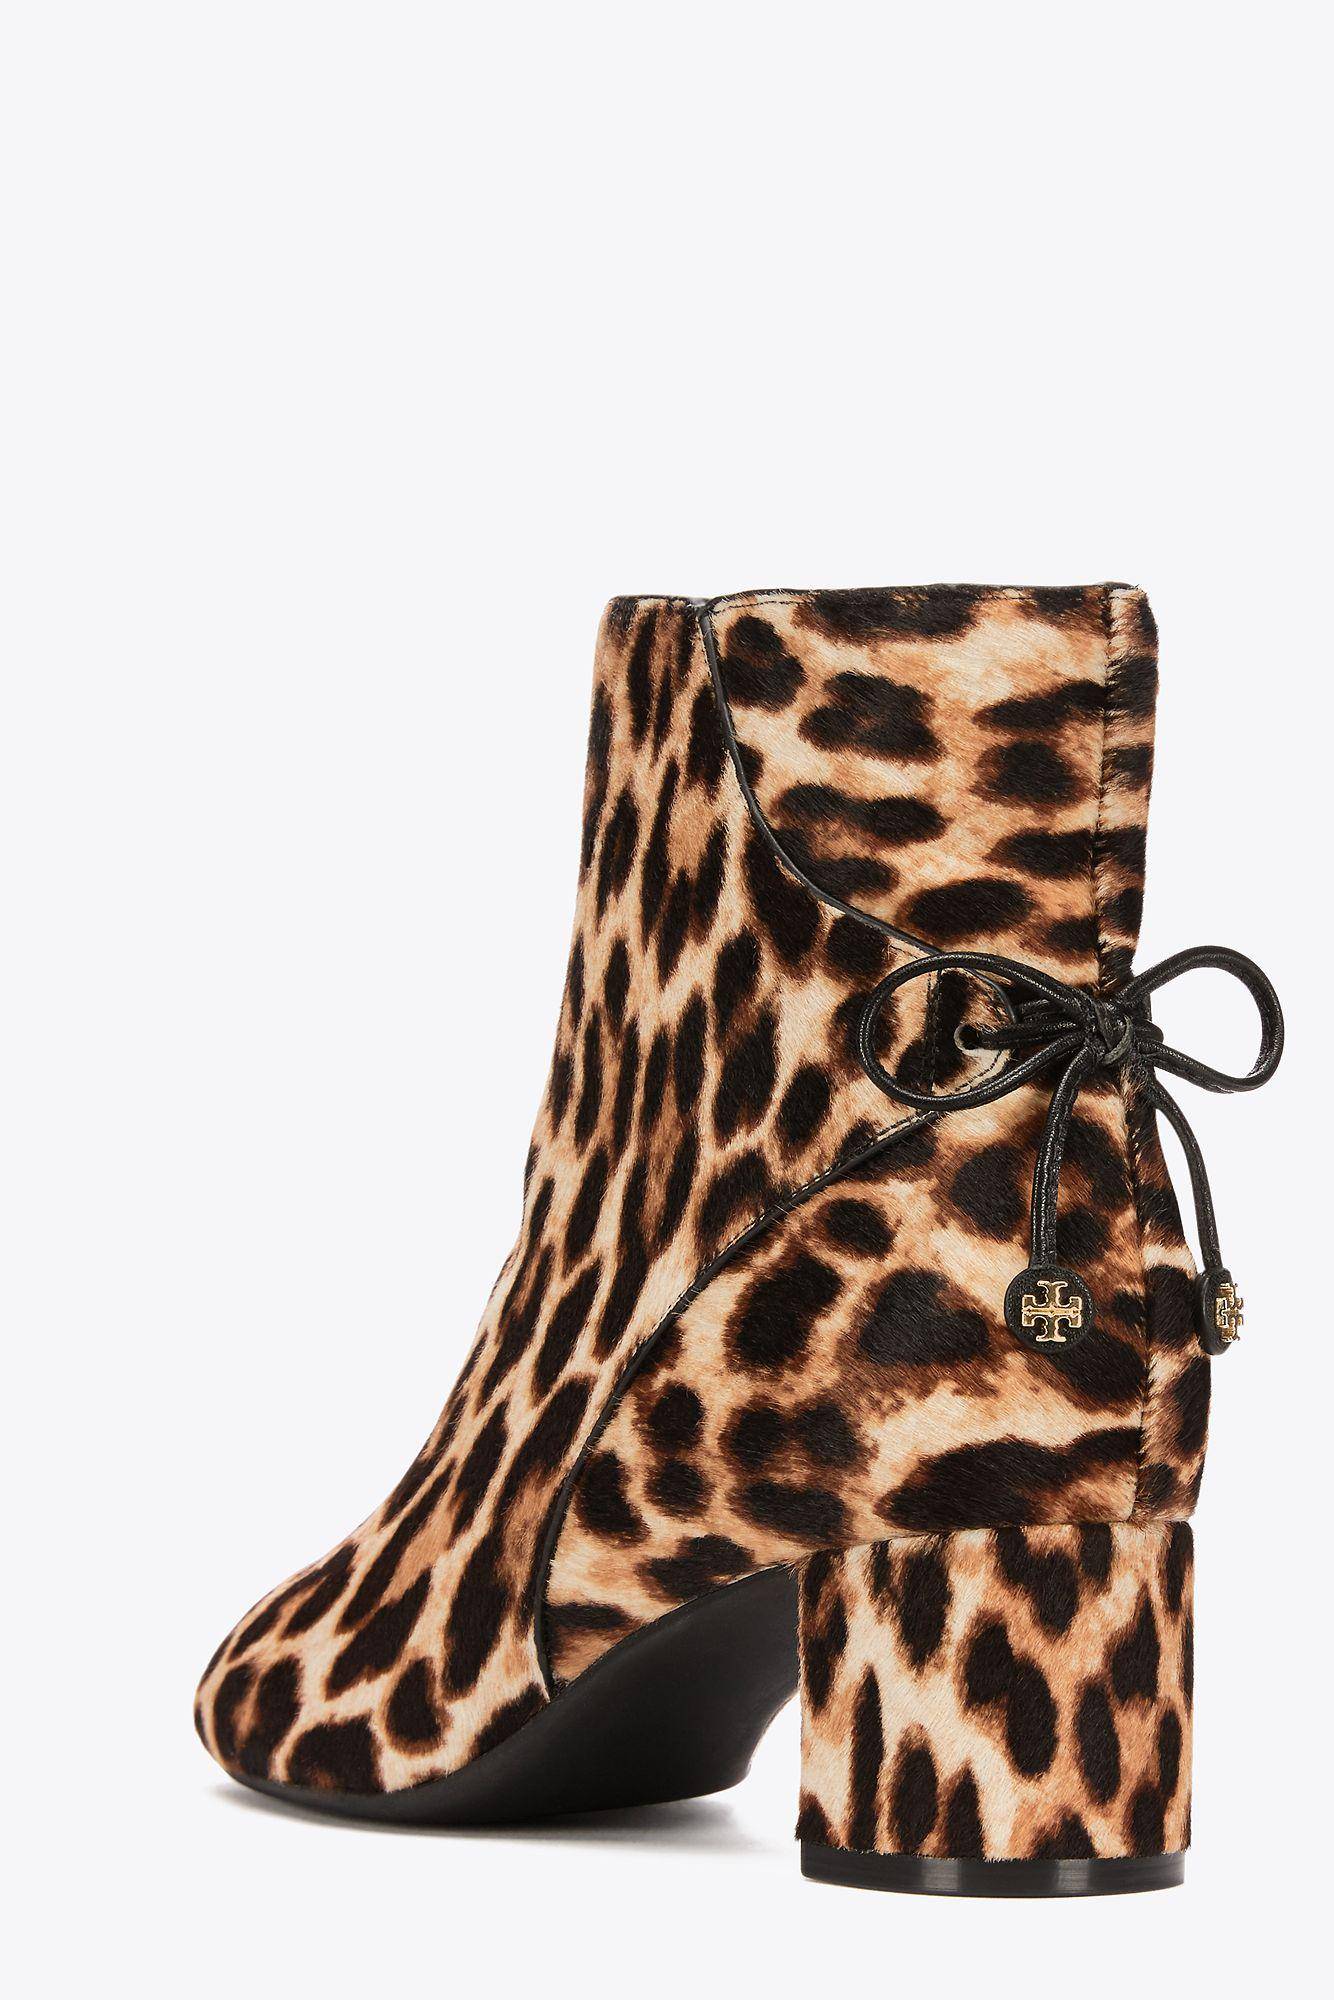 Tory Burch Bow-detailed Leopard-print